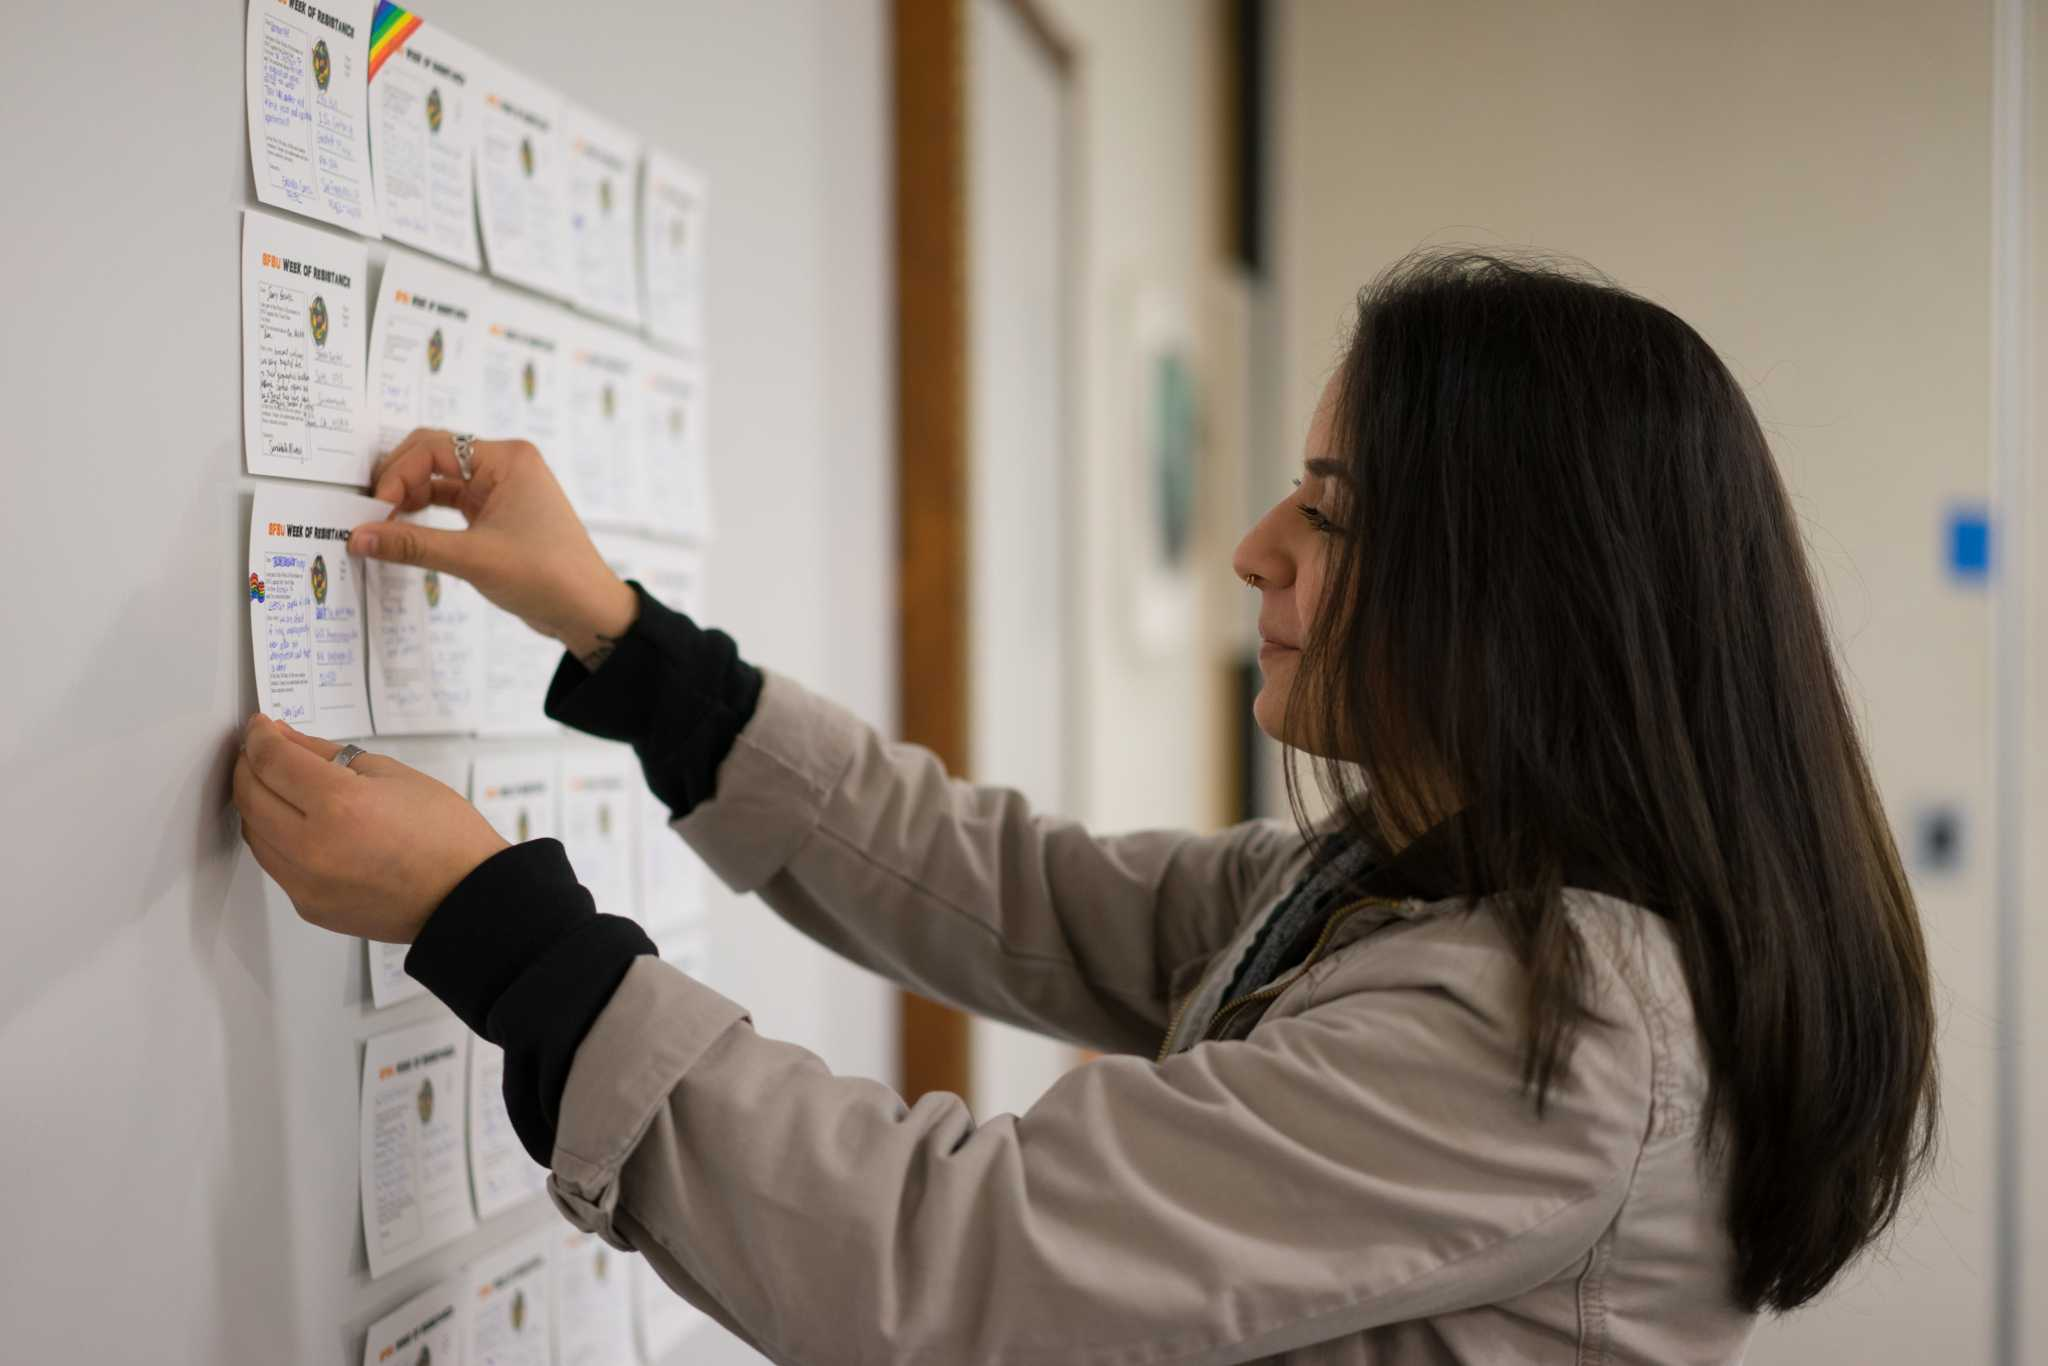 Gabriela Ceeros, a junior majoring in Latina studies, adds her letter to the wall for the Week of Resistance where students can find contact information for their district representatives and state senators to send letters addressing their concerns about the immigration ban by Donald Trump, in the Cesar Chavez Building at San Francisco State University on Monday, February 6, 2017. (Sarahbeth Maney/Xpress).